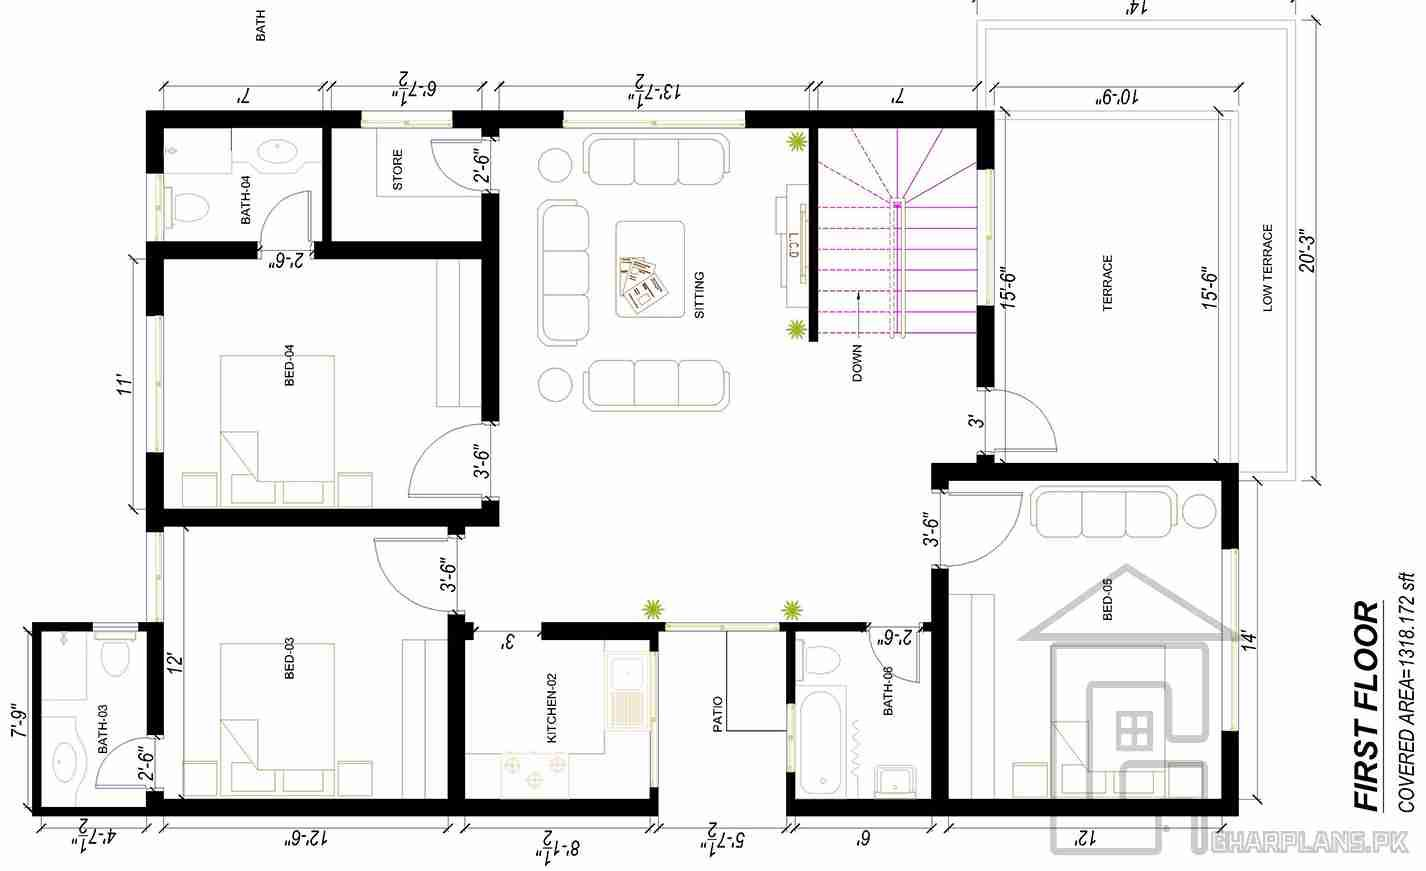 2 storey house design plans first floor House map, Home